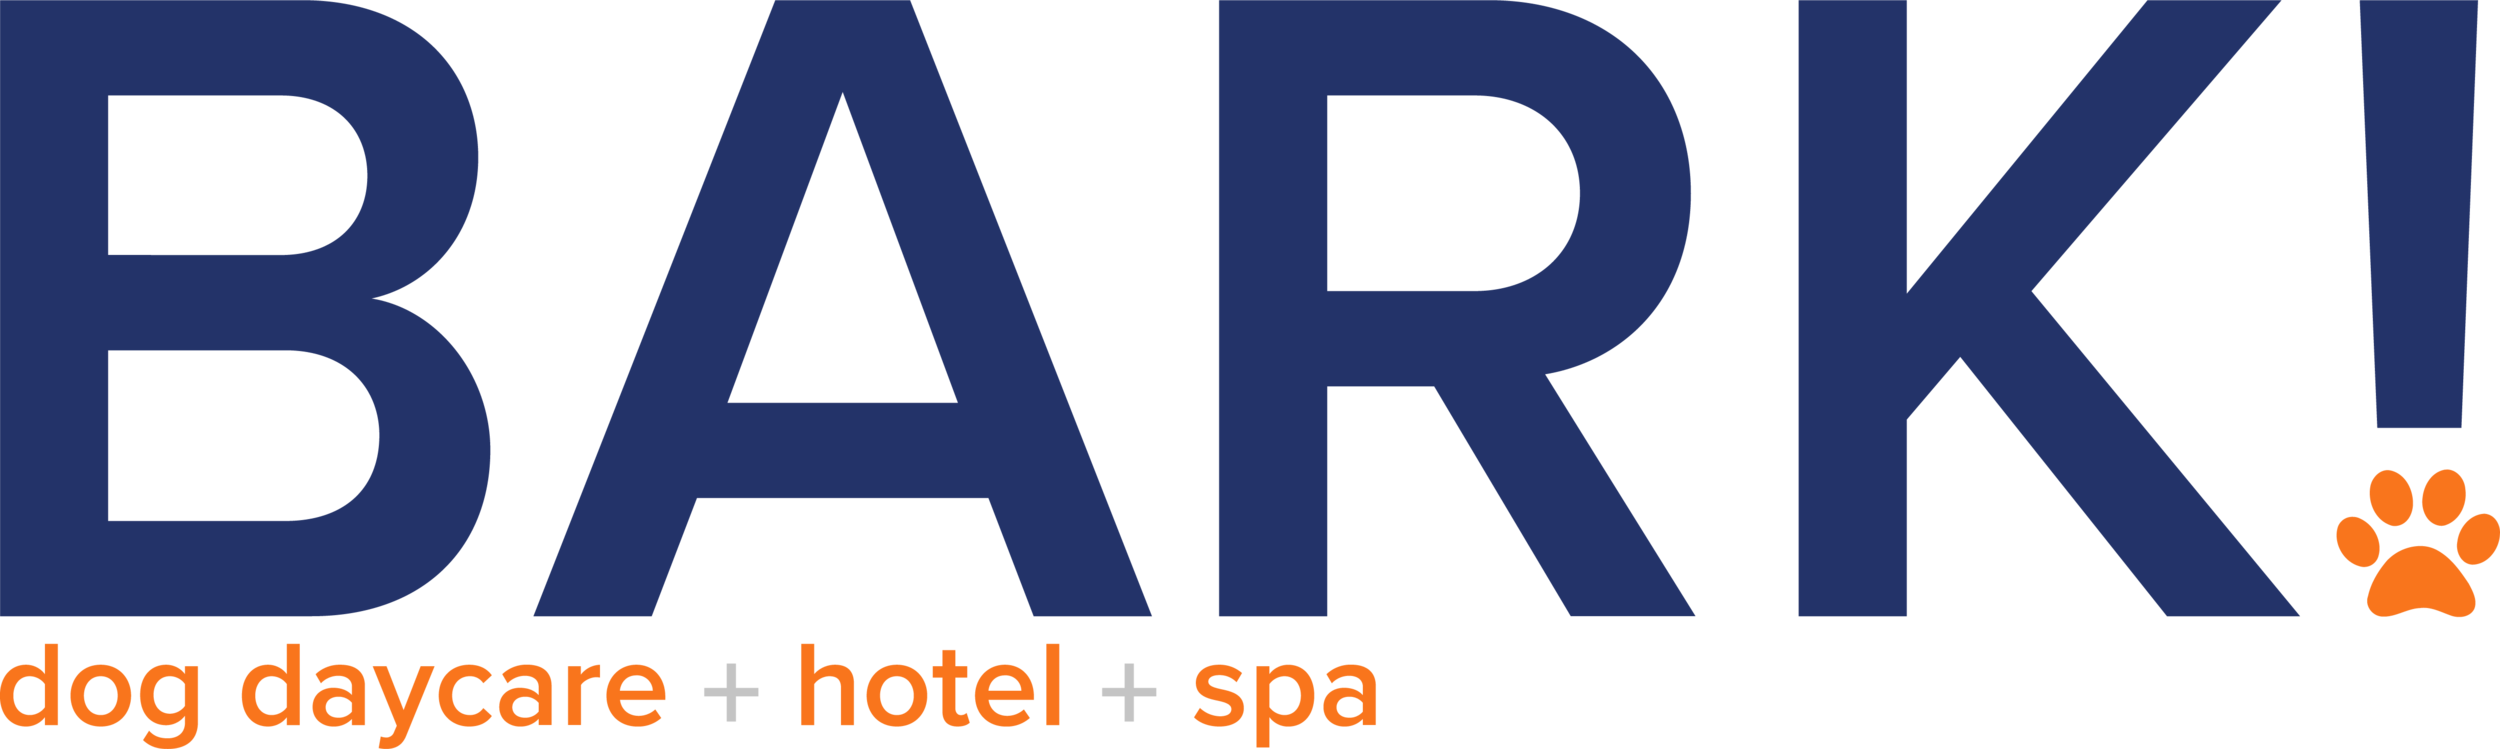 bark logo blue & orange-01.png